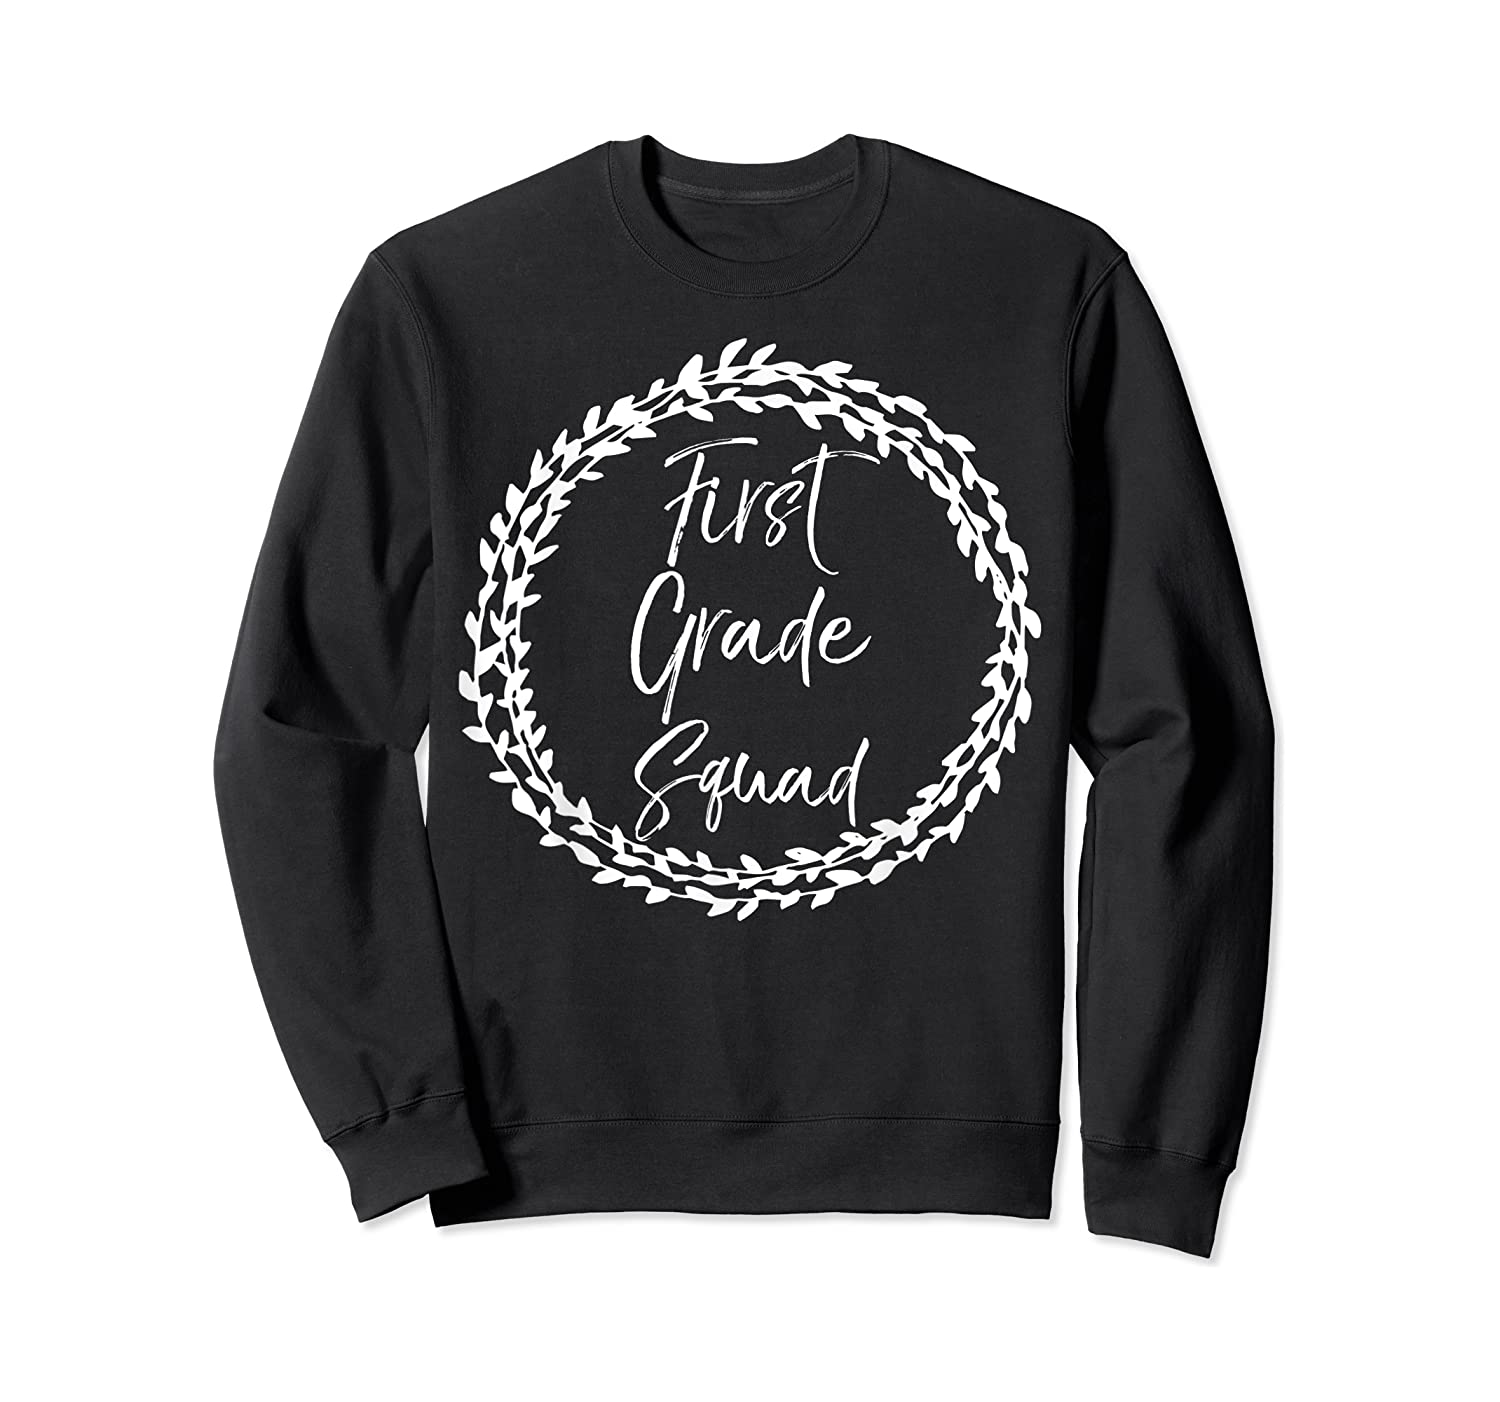 First Grade Squad Gift Cute Tea For Shirts Crewneck Sweater